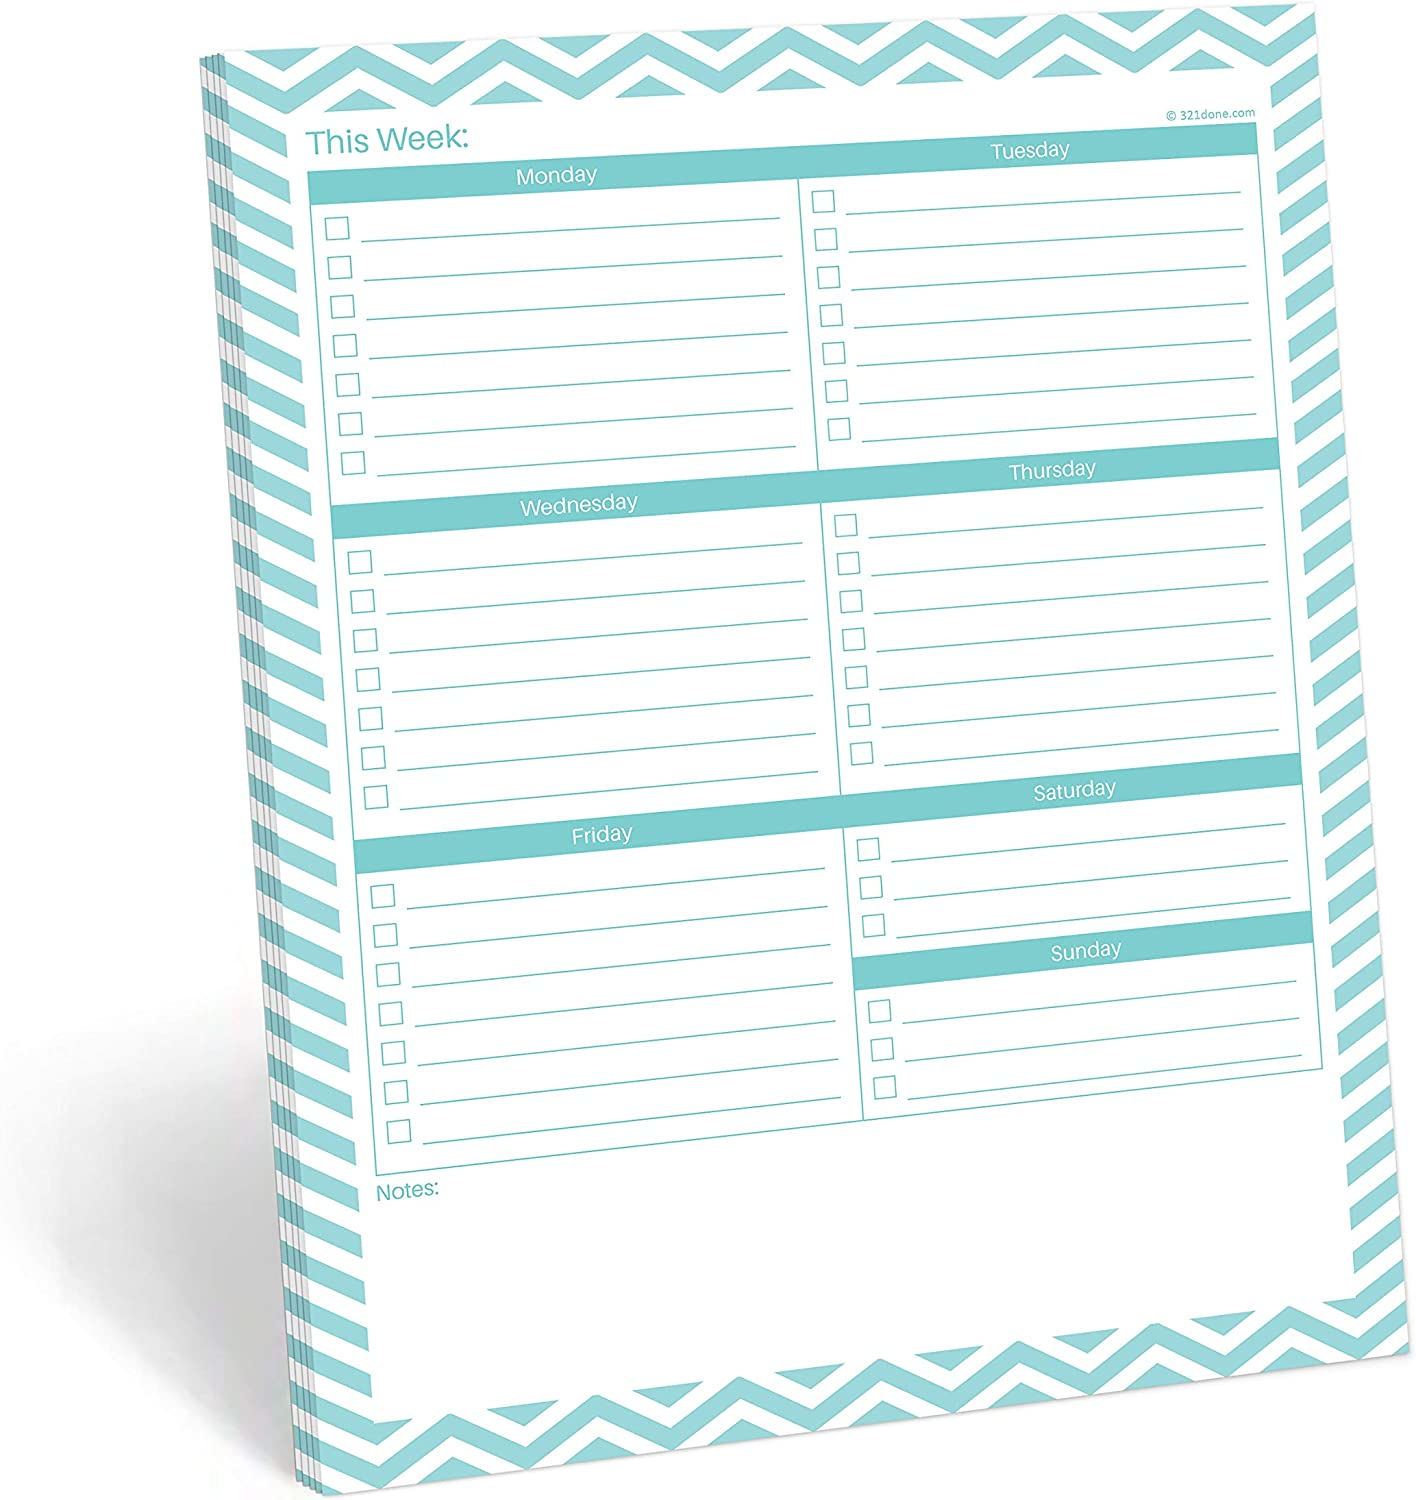 "321Done Weekly Checklist Planning Pad - 50 Sheets (8.5"" x 11"") - This Week to Do Notepad Tear Off, Desktop Planner Large Letter-Size - Made in USA - Chevron Teal"